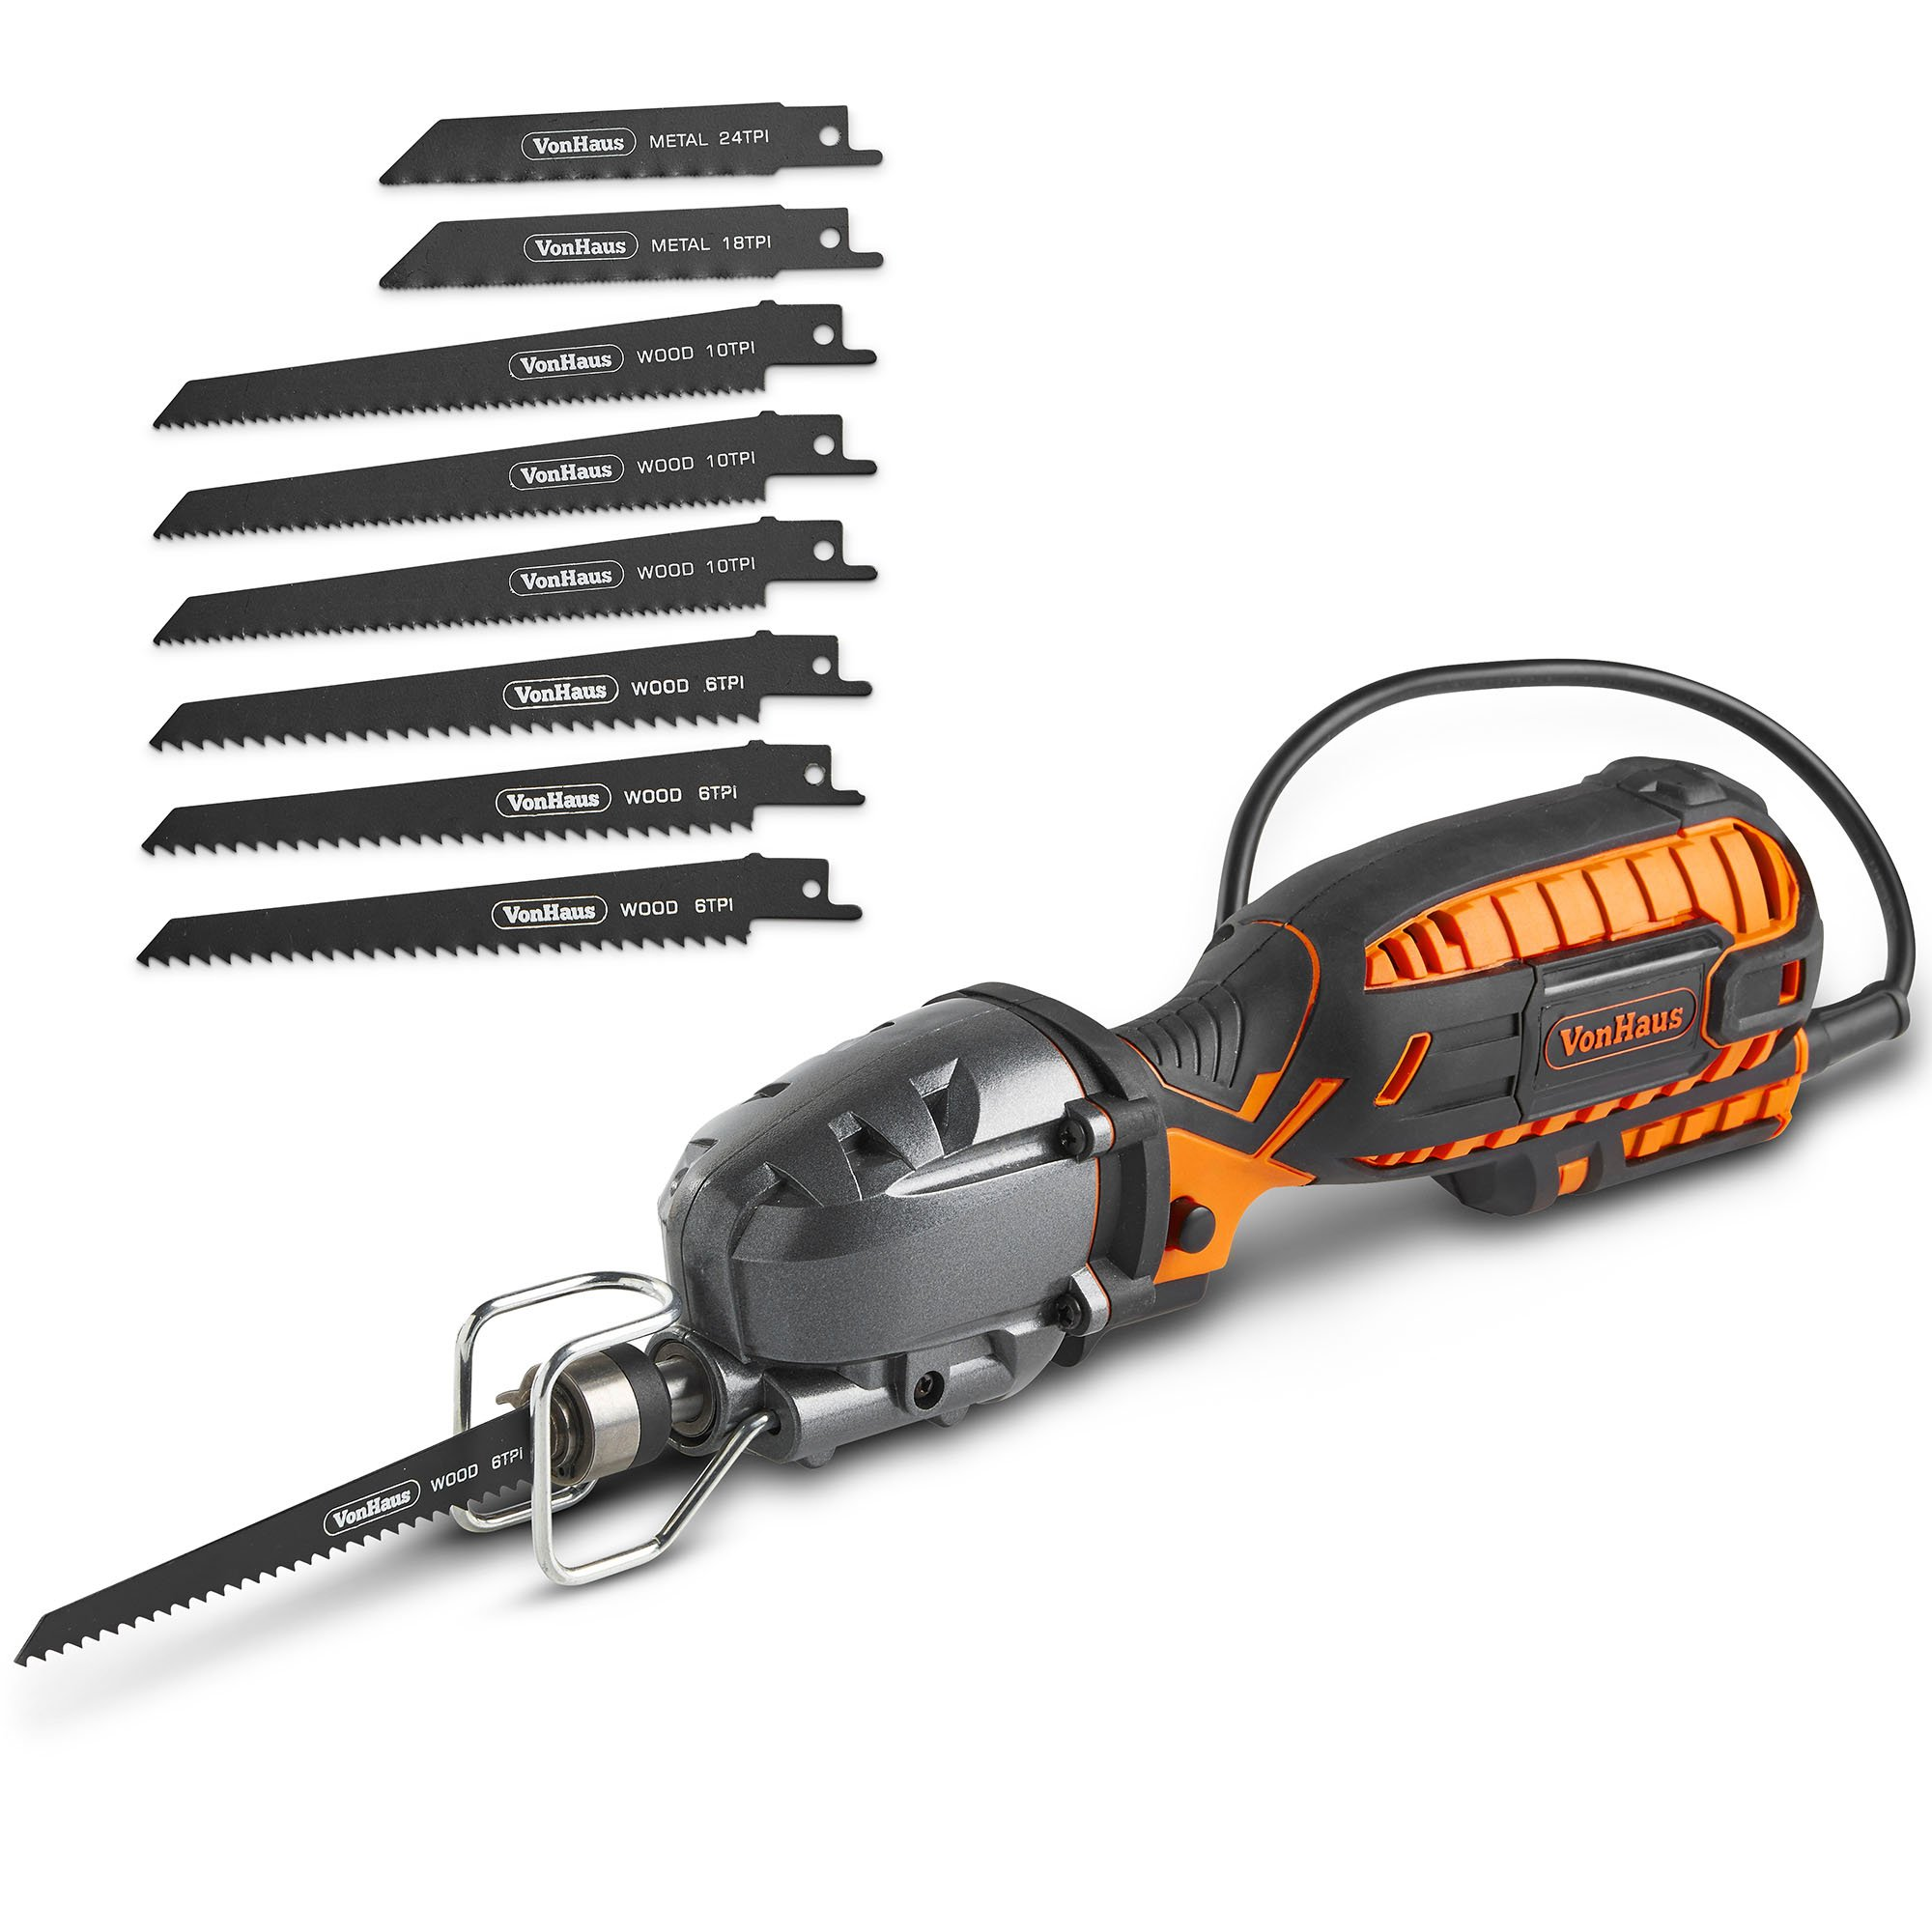 VonHaus 5 Amp Compact Reciprocating Saw Kit Electric Saw with 8 Blades, ½'' Stroke Length, Max. Cutting Capacity 4½'', 3000SPM and 16ft Cable, For DIYWood Cutting & Metal Cutting by VonHaus